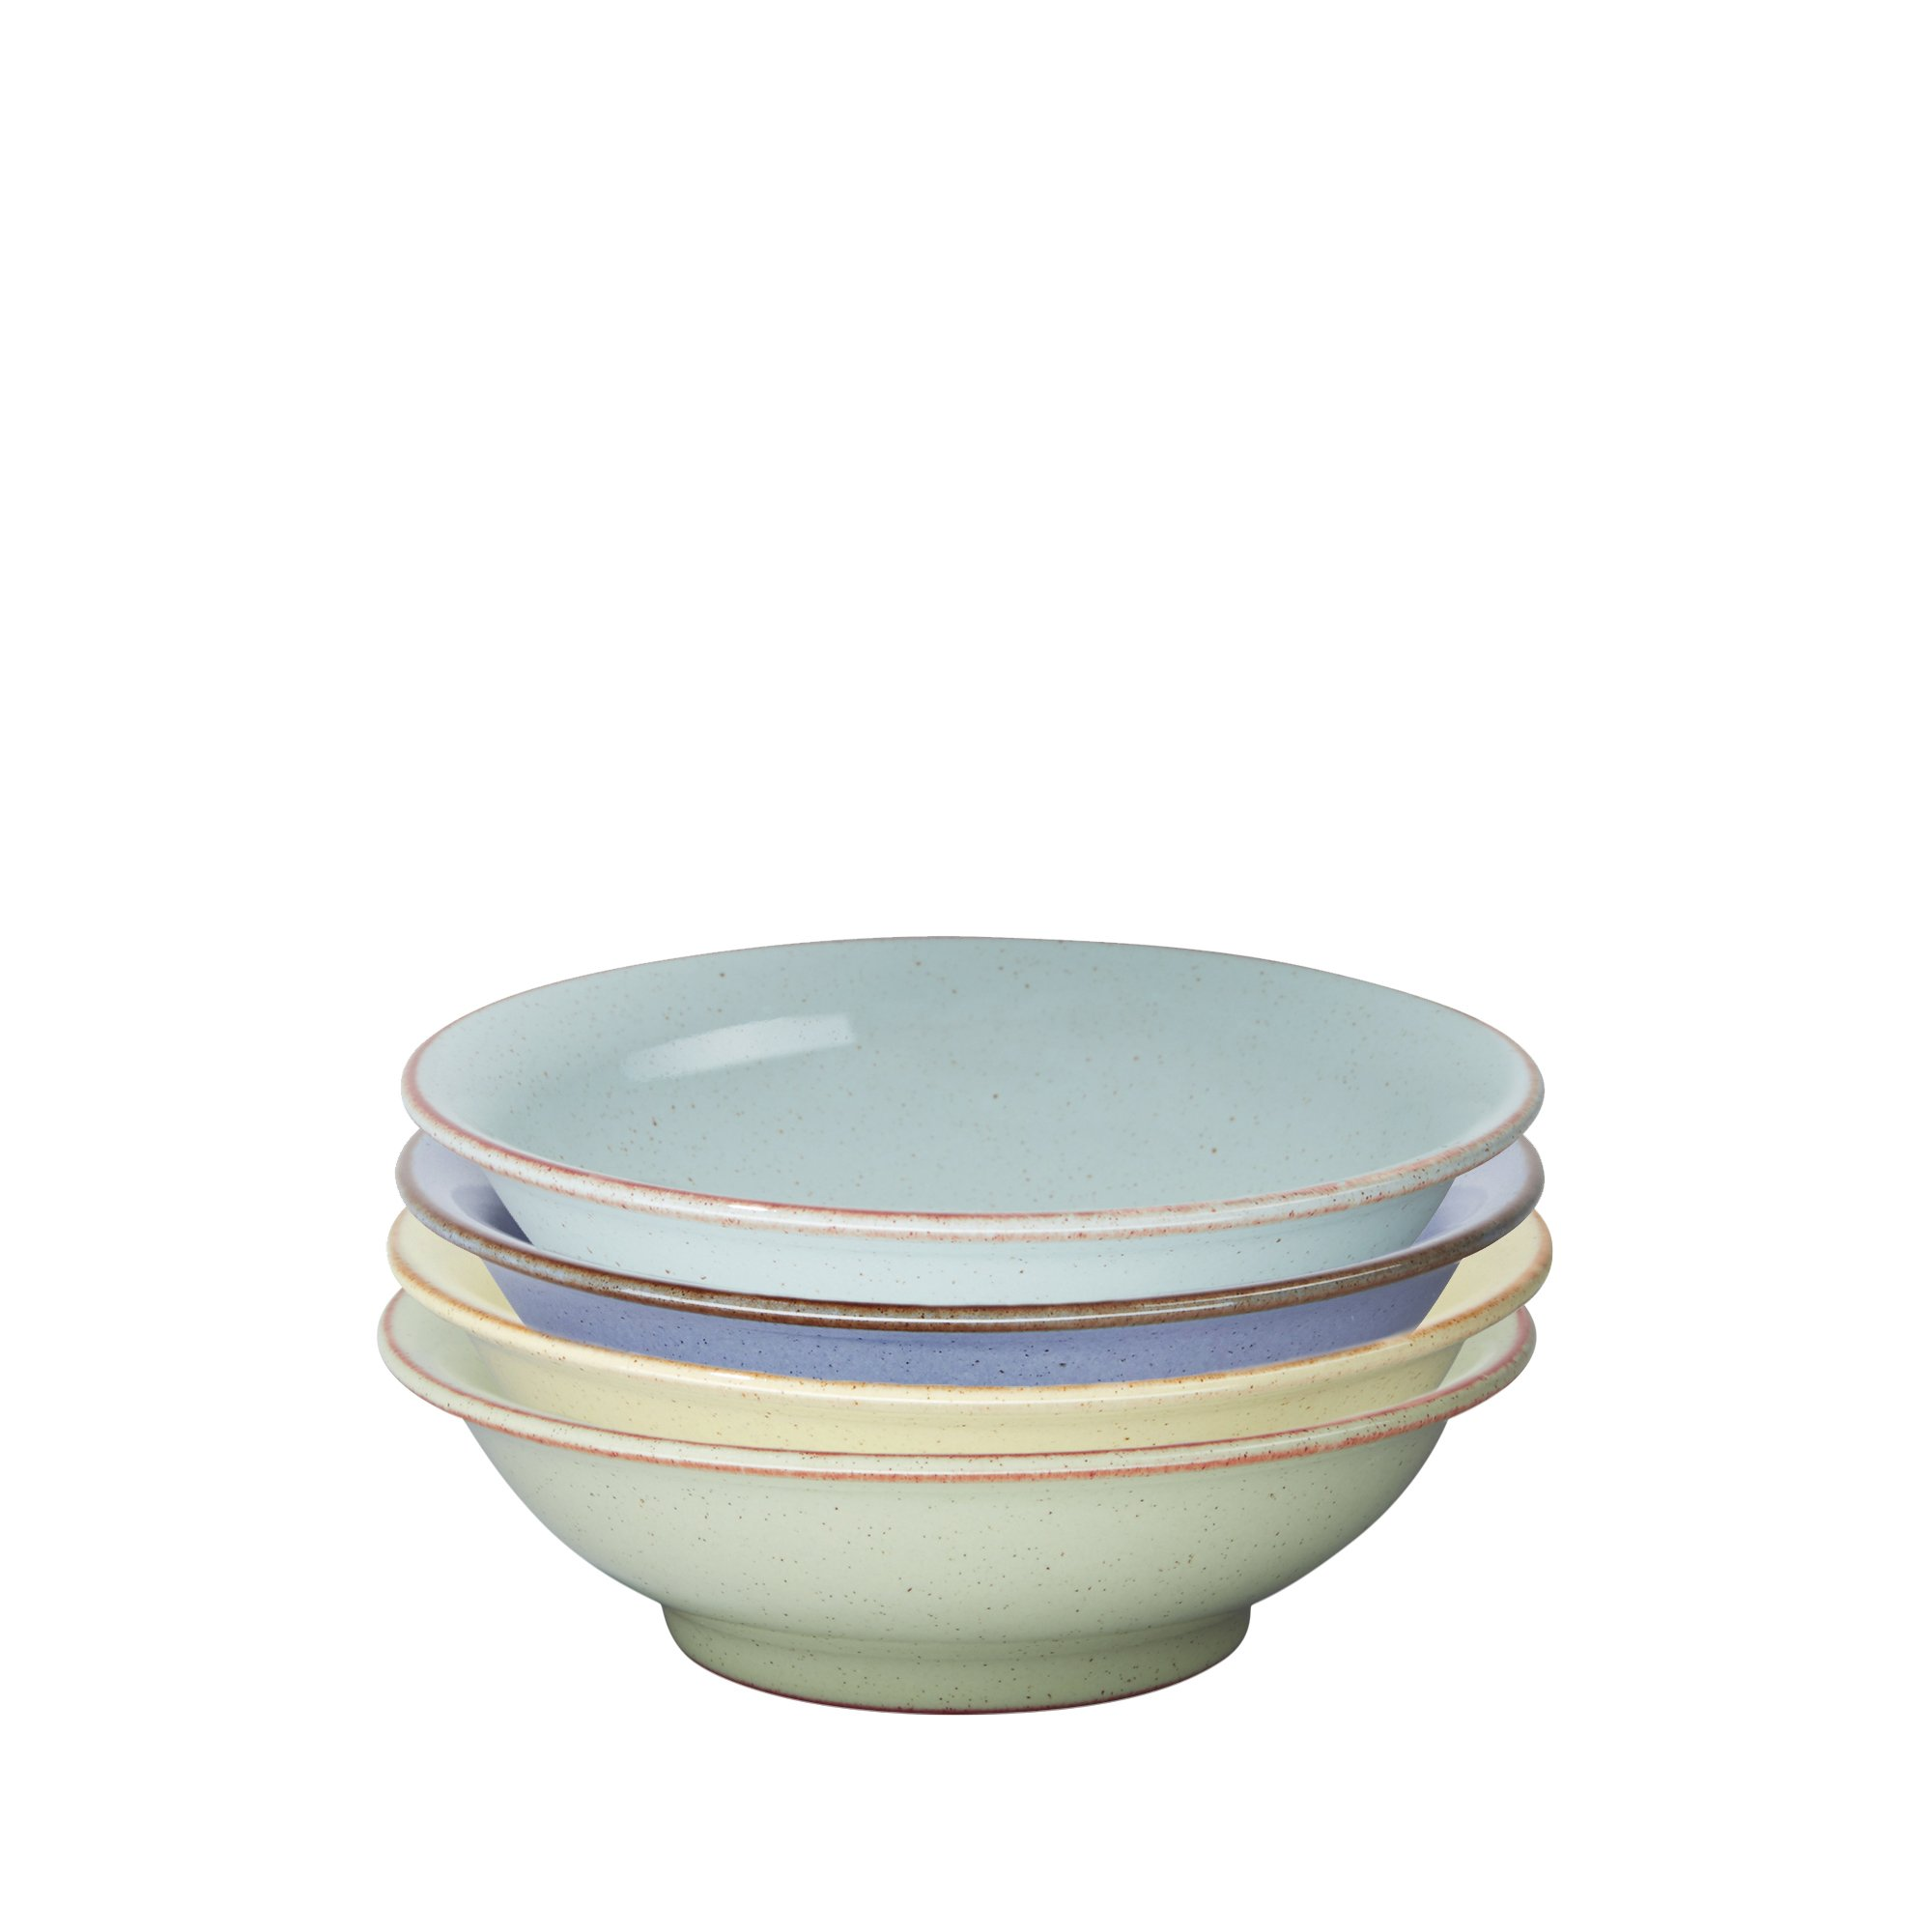 Denby USA Heritage Assorted Small Shallow Bowls (Set of 4), Multicolor